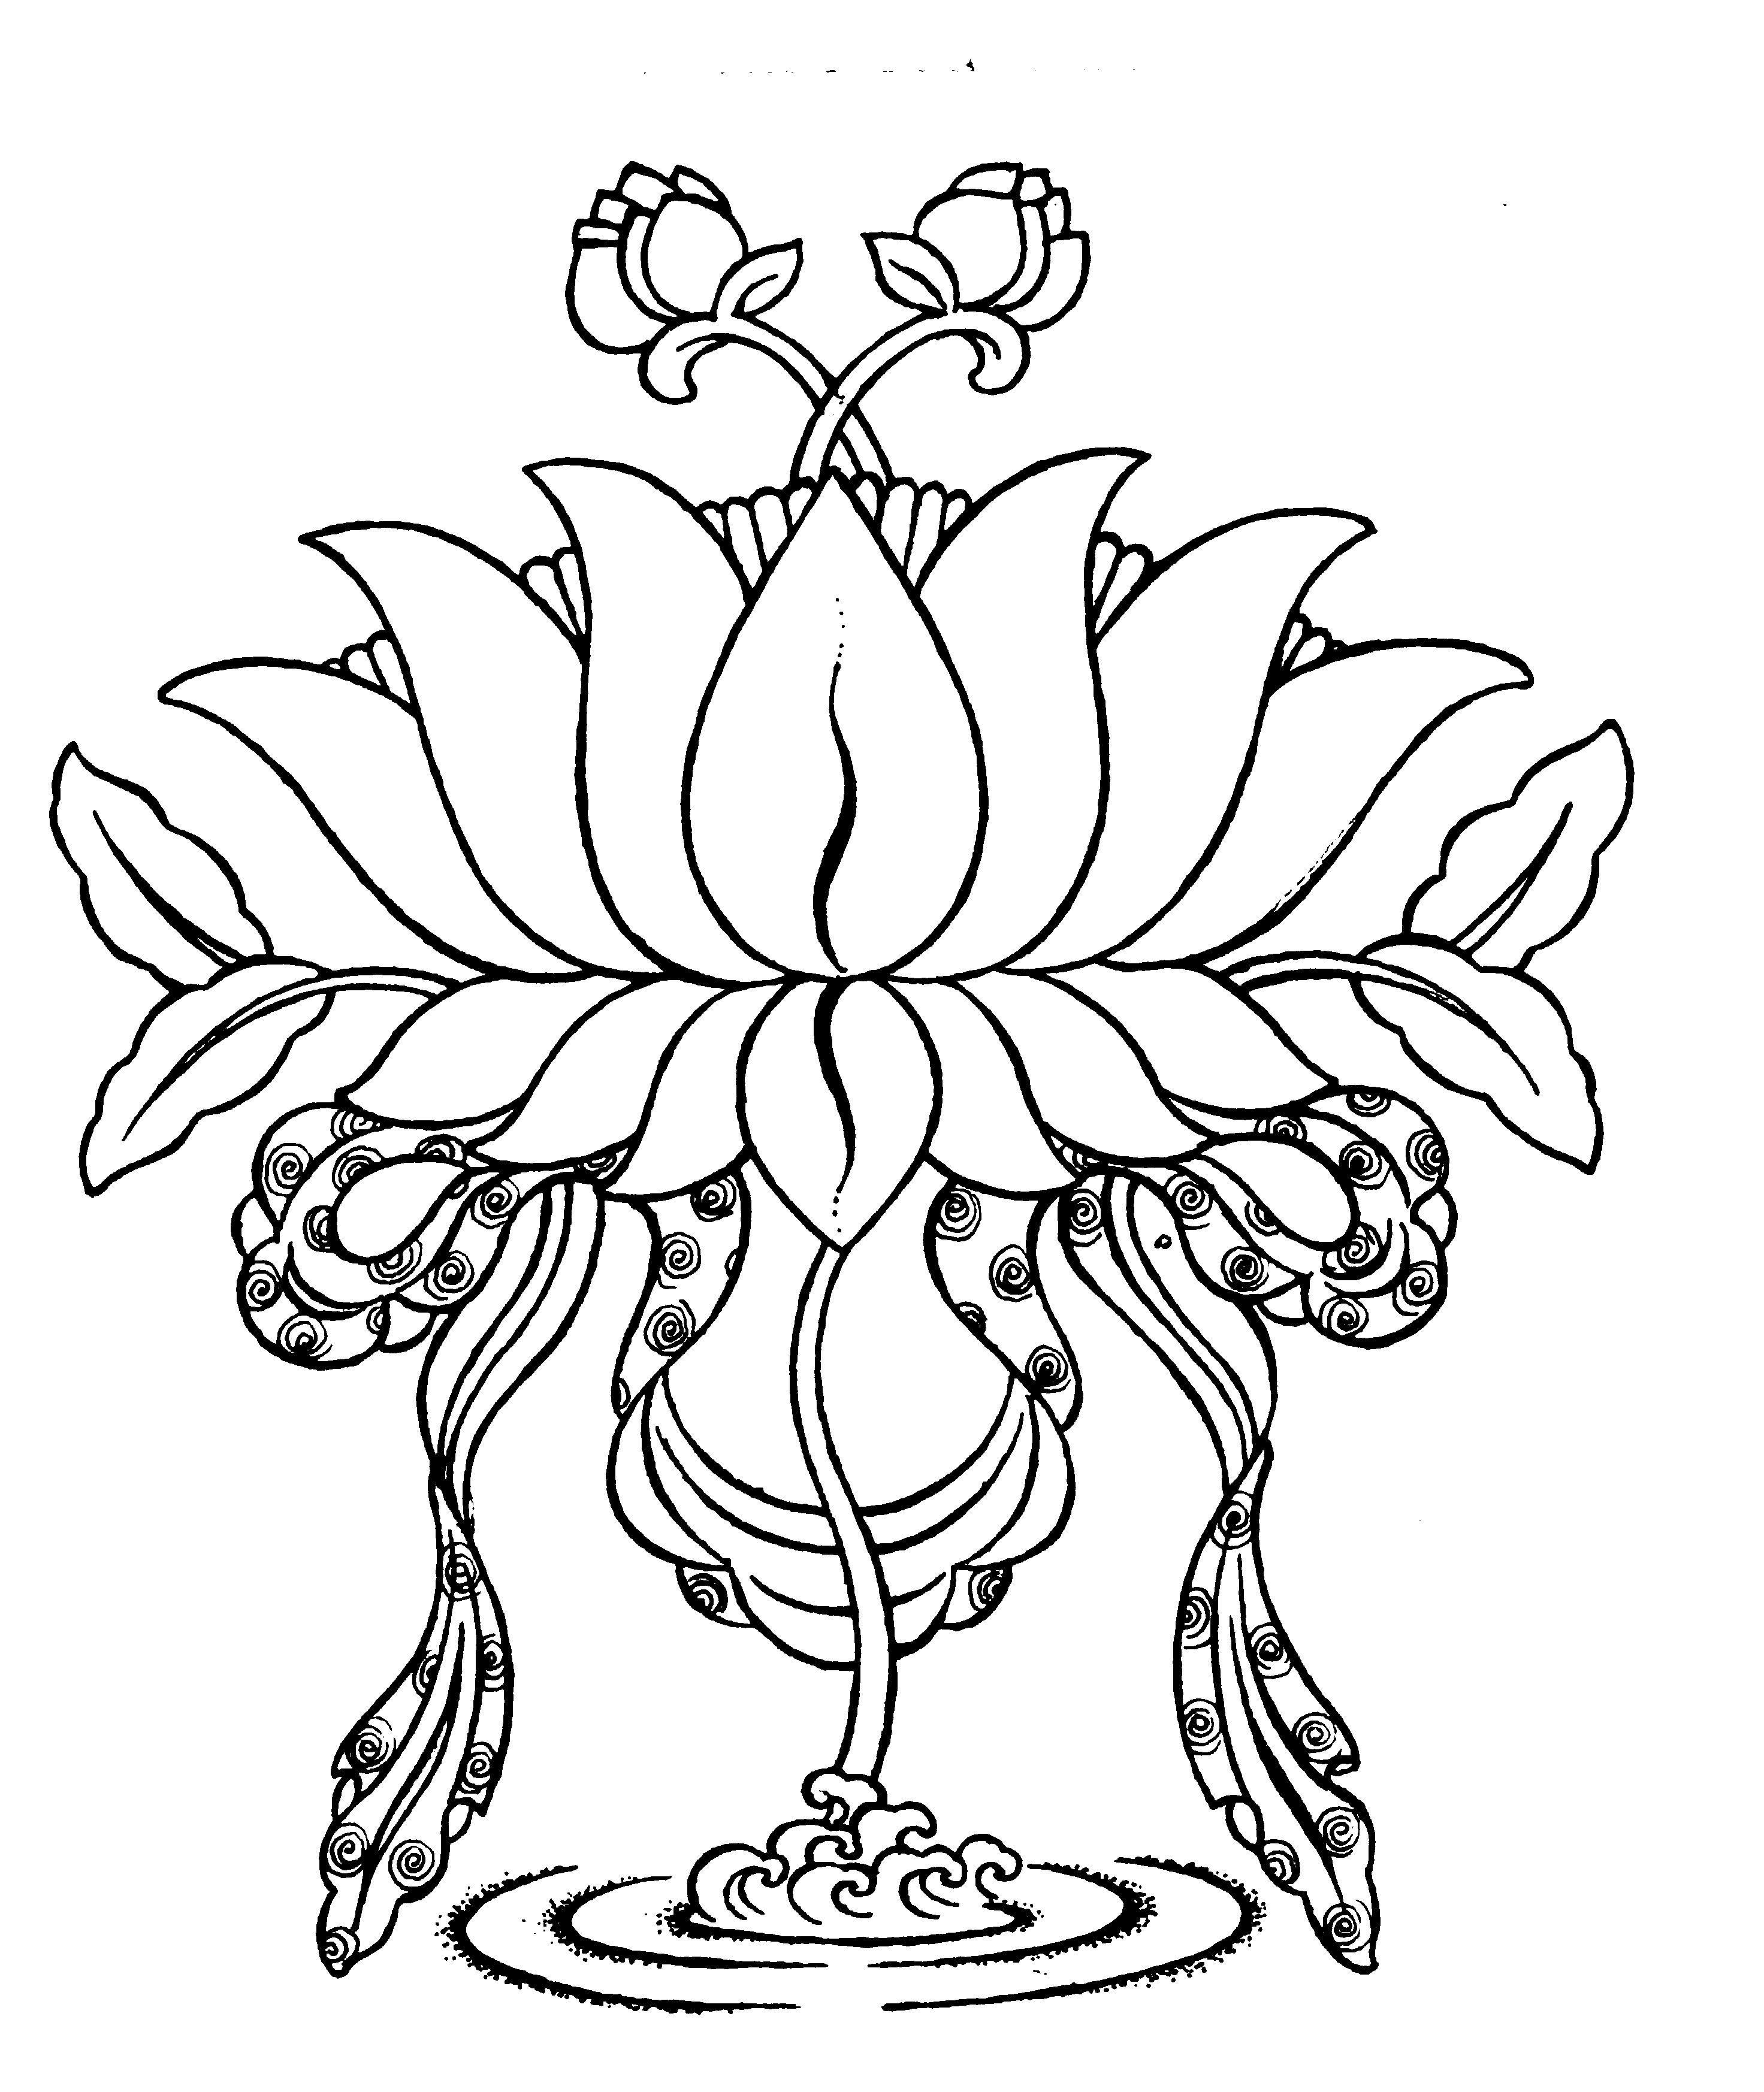 Image result for buddhist lotus flower drawing jewellery murals